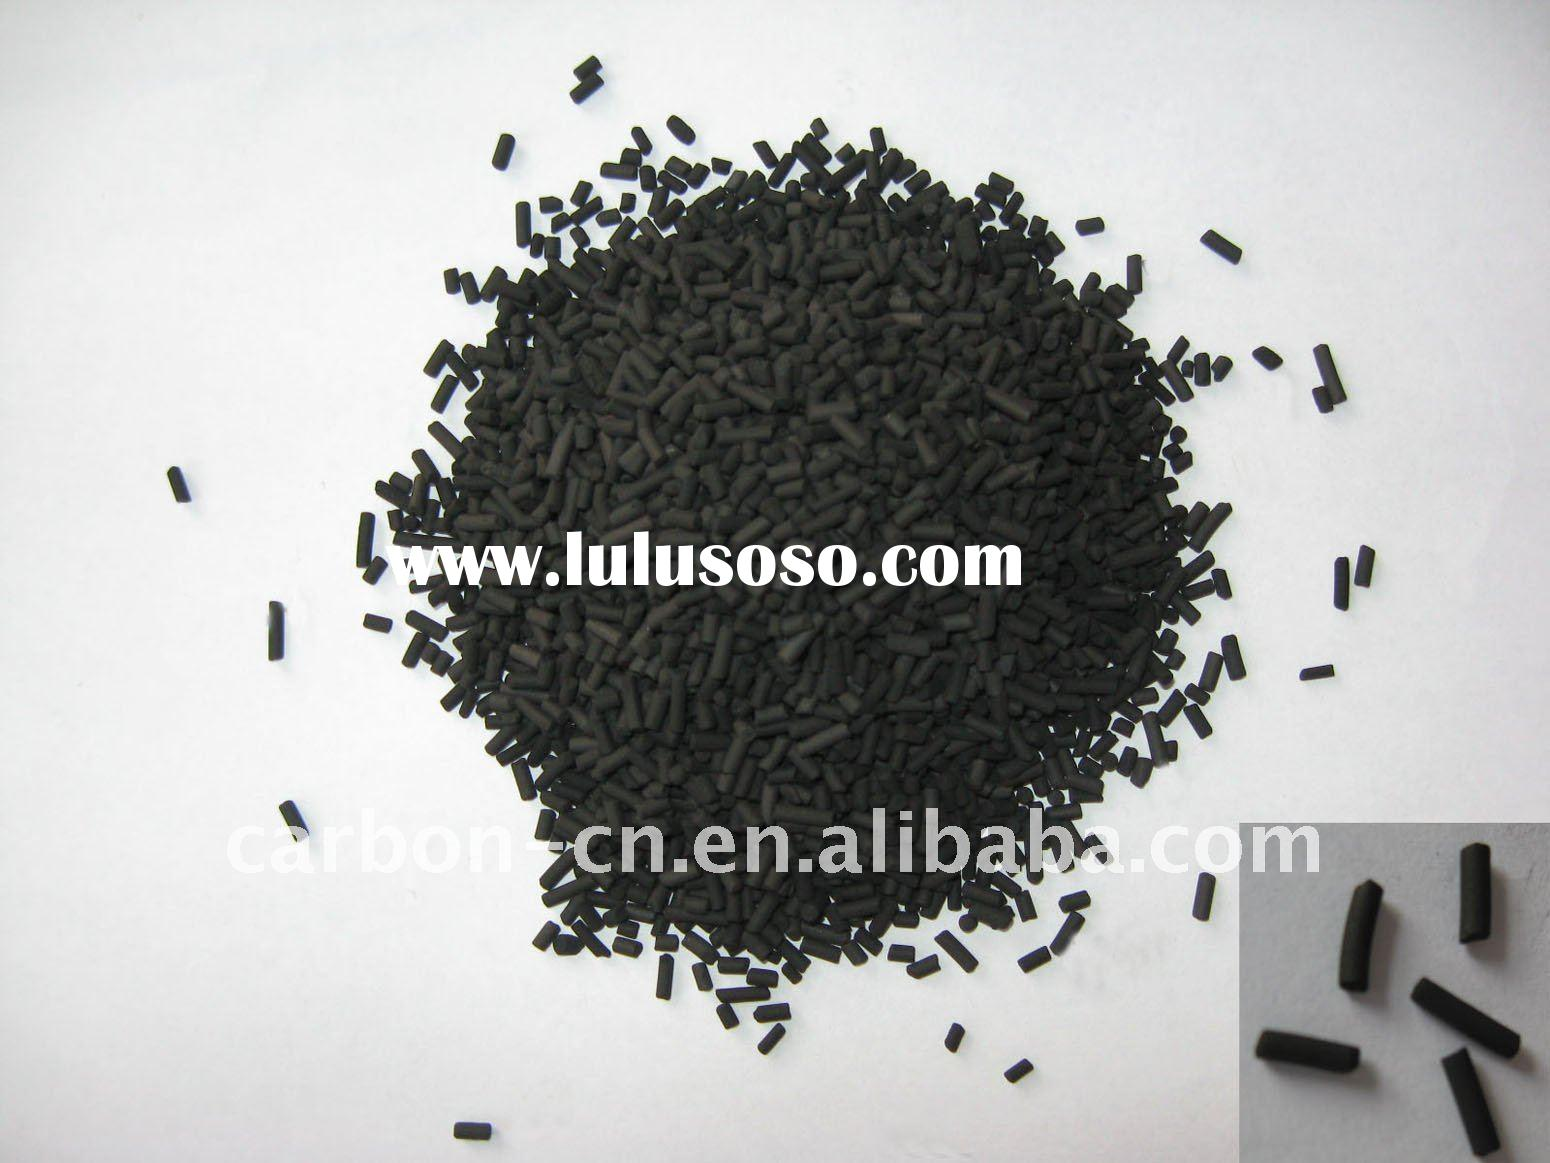 pellet activated carbon, bituminous coal based activated carbon